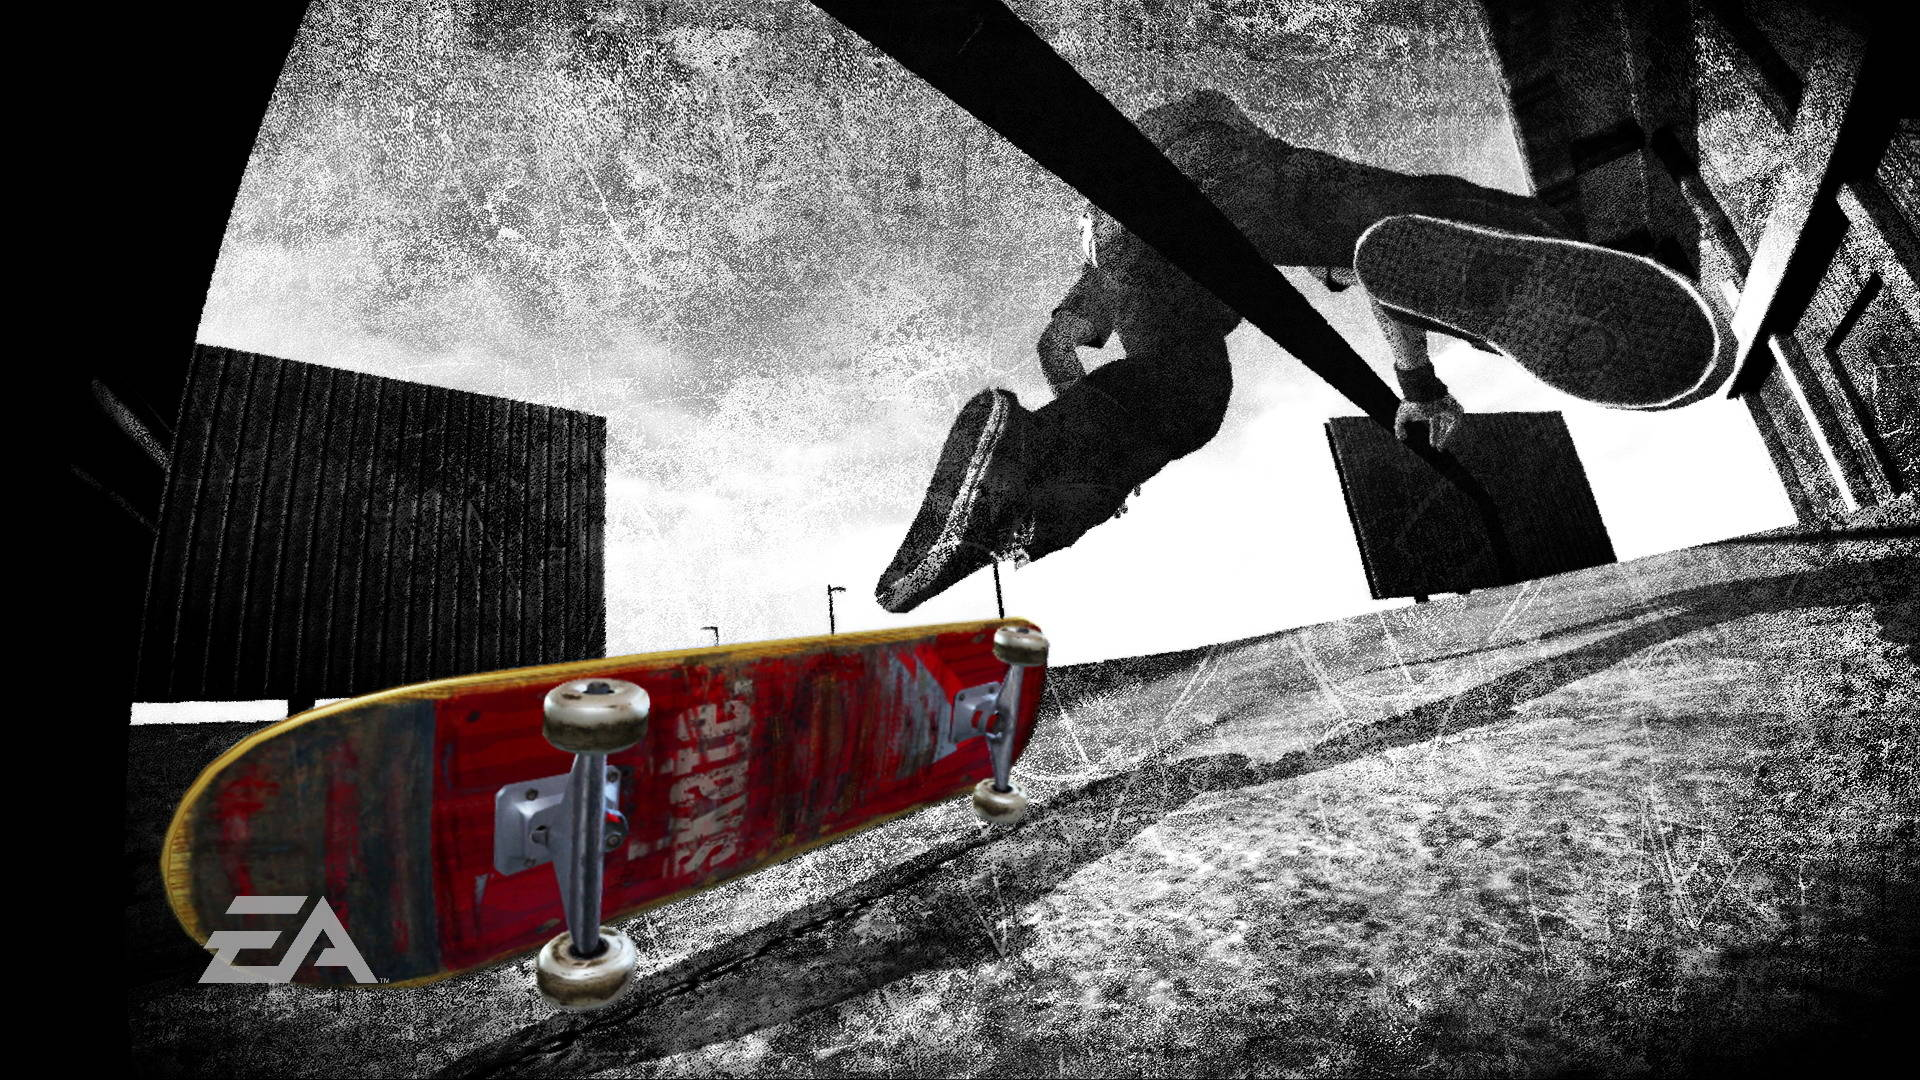 HD Skateboarding Backgrounds 1920x1080